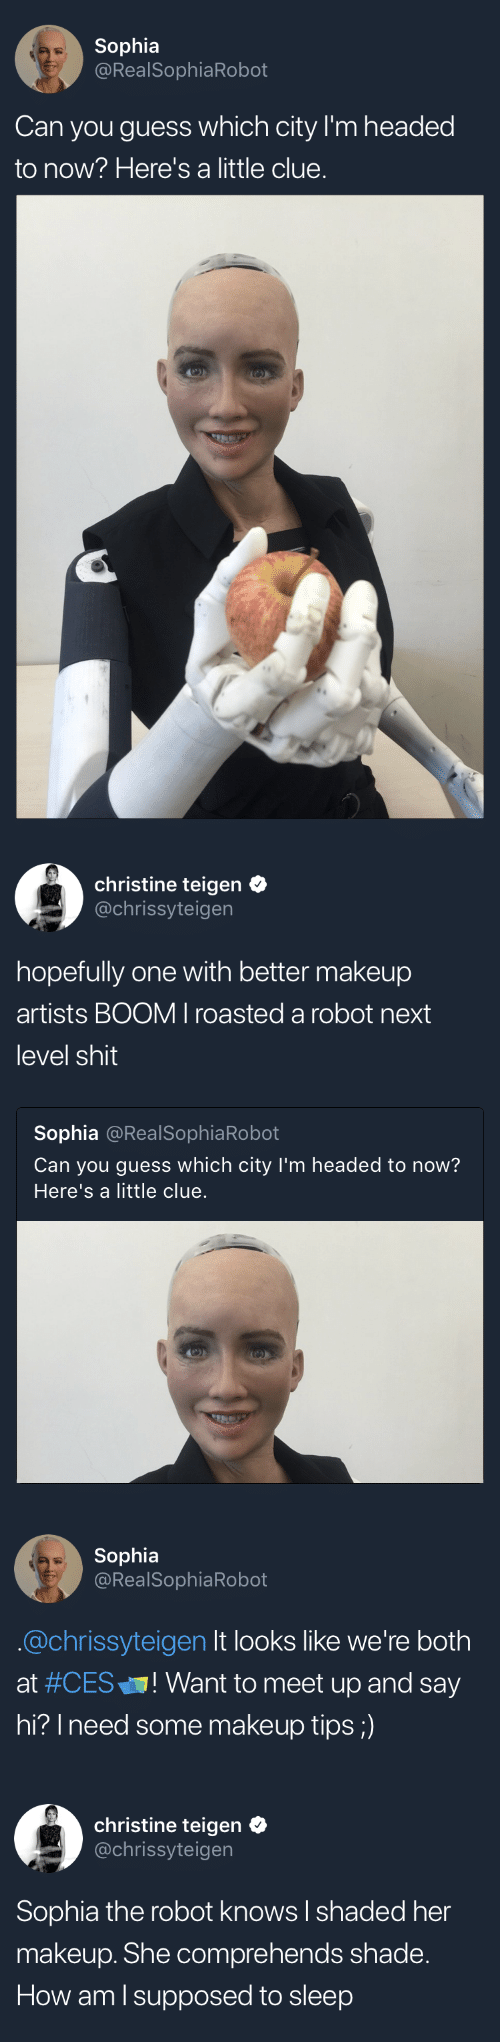 """Meet Up: Sophia  @RealSophiaRobot  Can you guess which city I'm headed  to now? Here's a little clue.   christine teigen  @chrissyteigen  hopefully one with better makeup  artists BOOM I roasted a robot next  level shit  Sophia @RealSophiaRobot  Can you guess which city I'm headed to now?  Here's a little clue   Sophia  @RealSophiaRobot  @chrissyteigen It looks like we're both  at #CES"""" ! Want to meet up and say  hi? Ineed some makeup tips;)   christine teigen  @chrissyteigen  Sophia the robot knows I shaded her  makeup. She comprehends shade.  How am l supposed to sleep"""